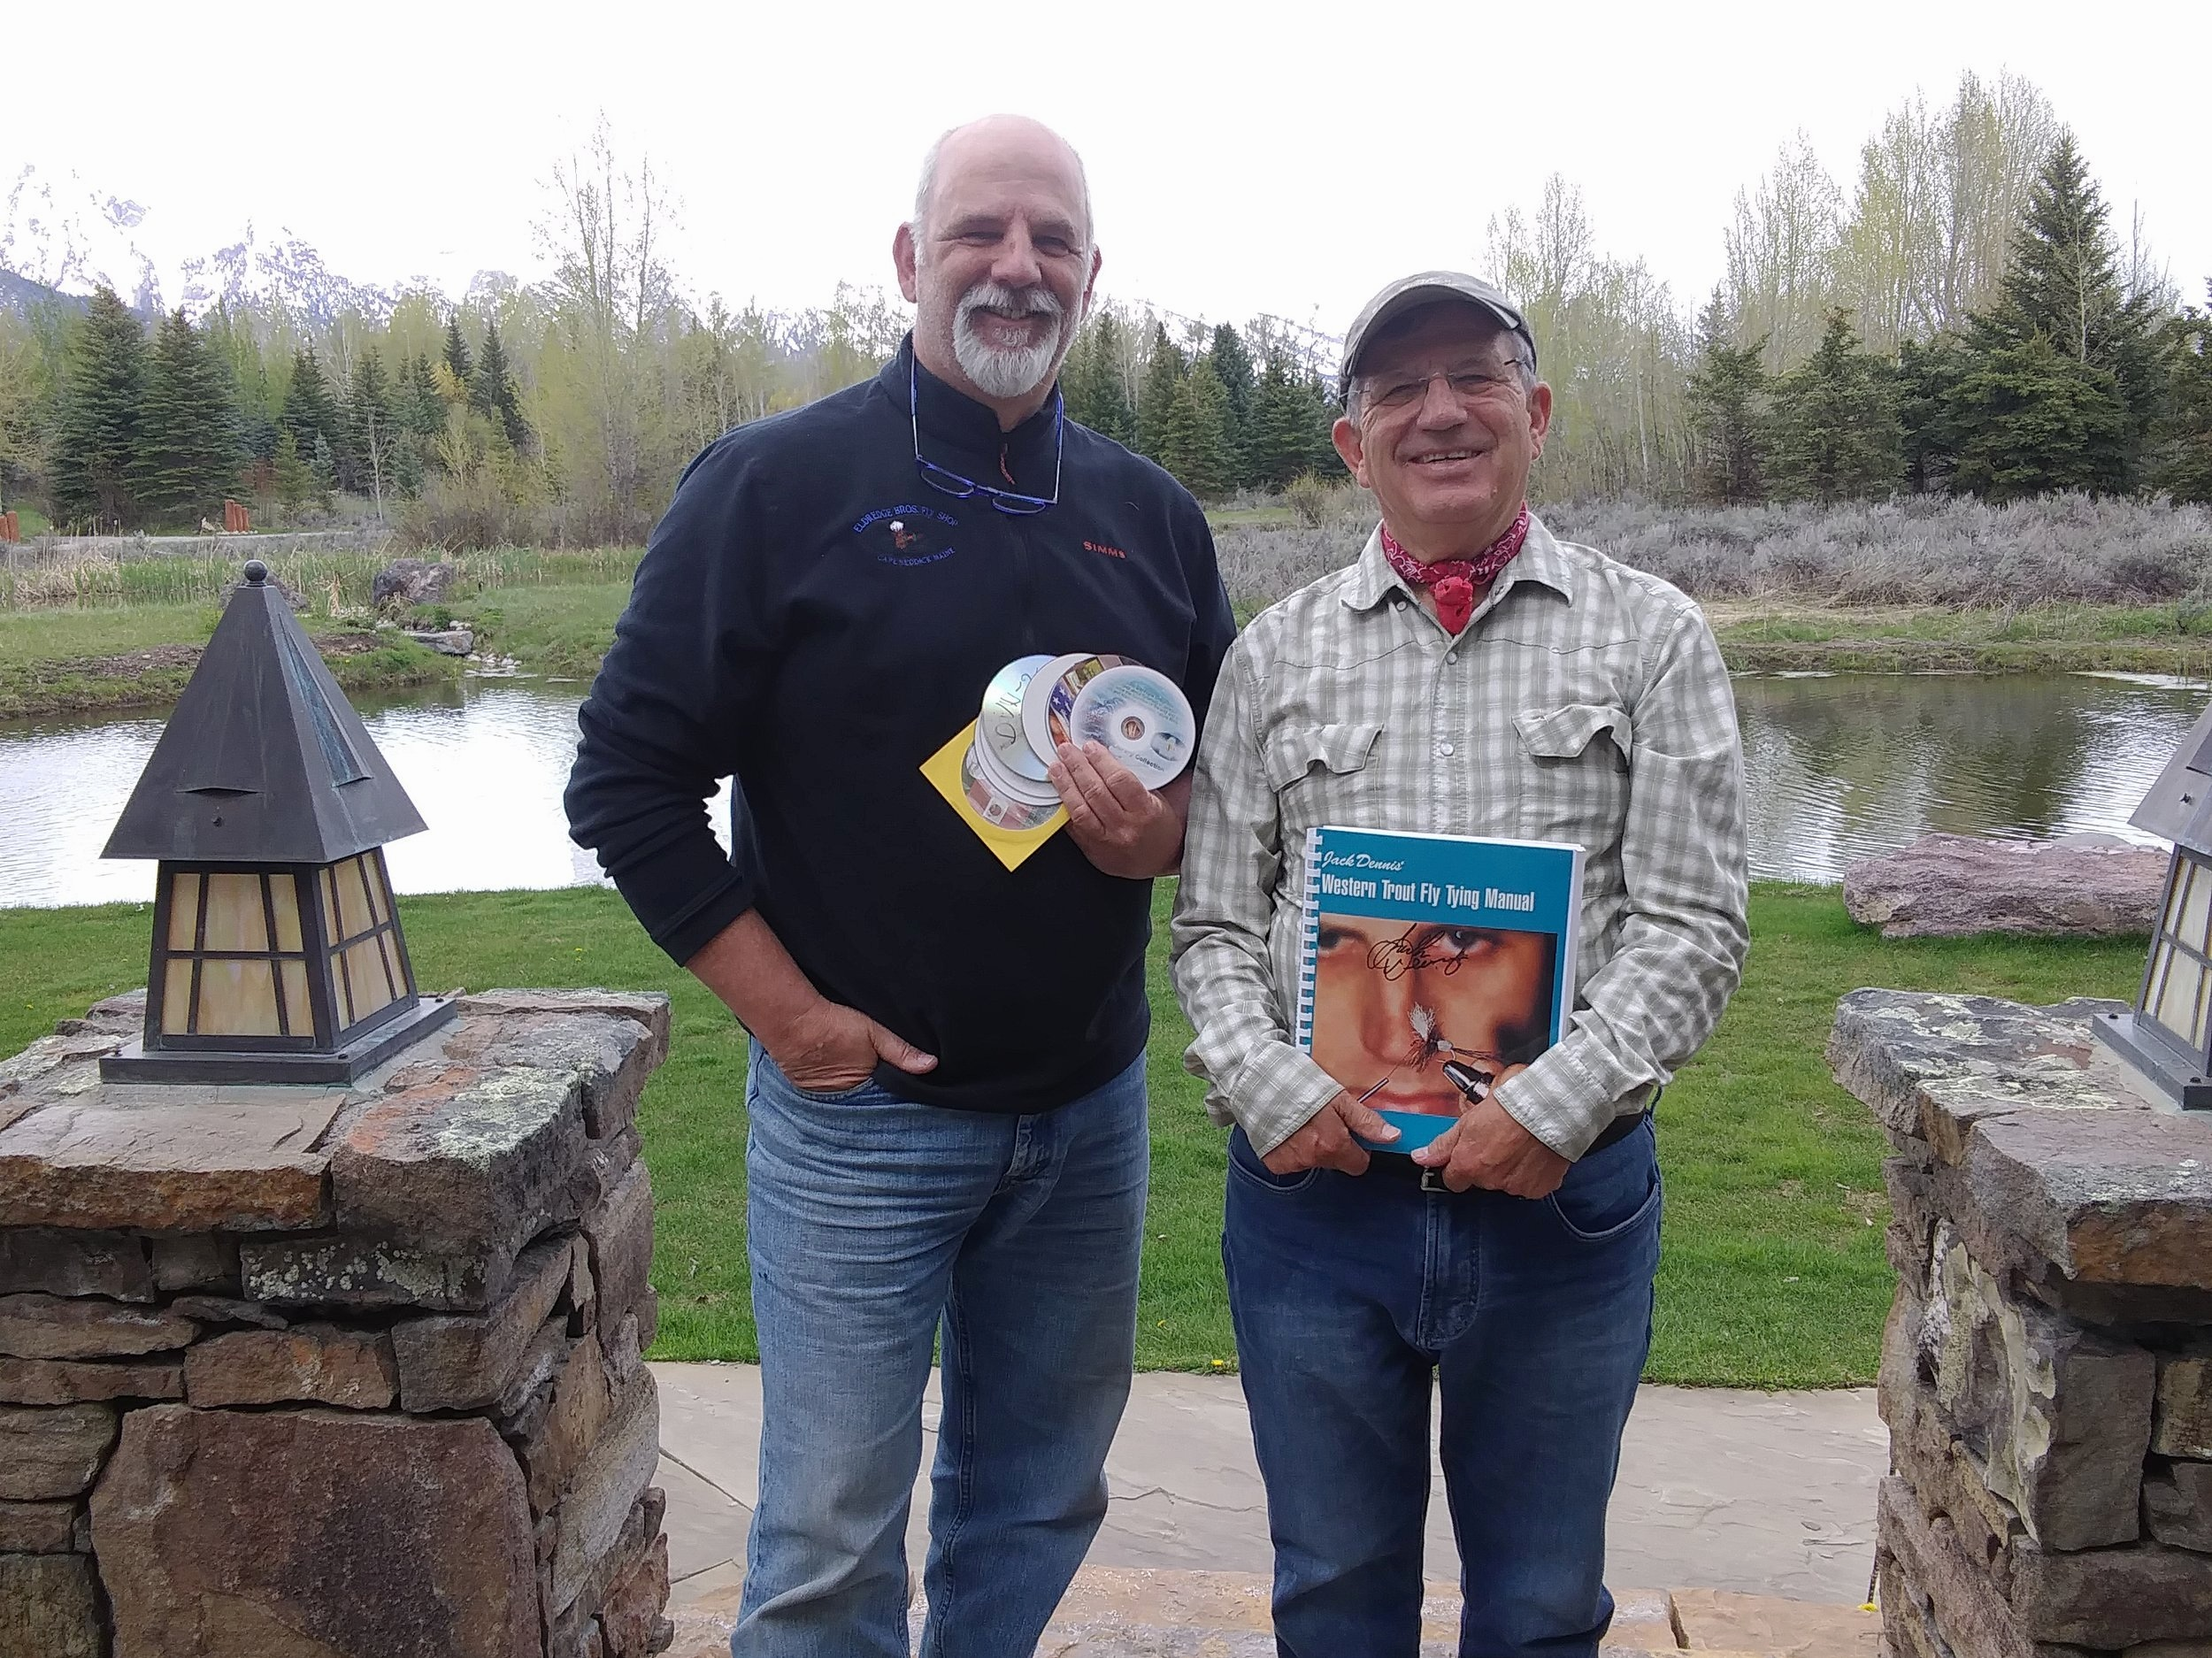 Fly fishing icon Jack dennis and I in Jackson Hole. Wyoming 2019